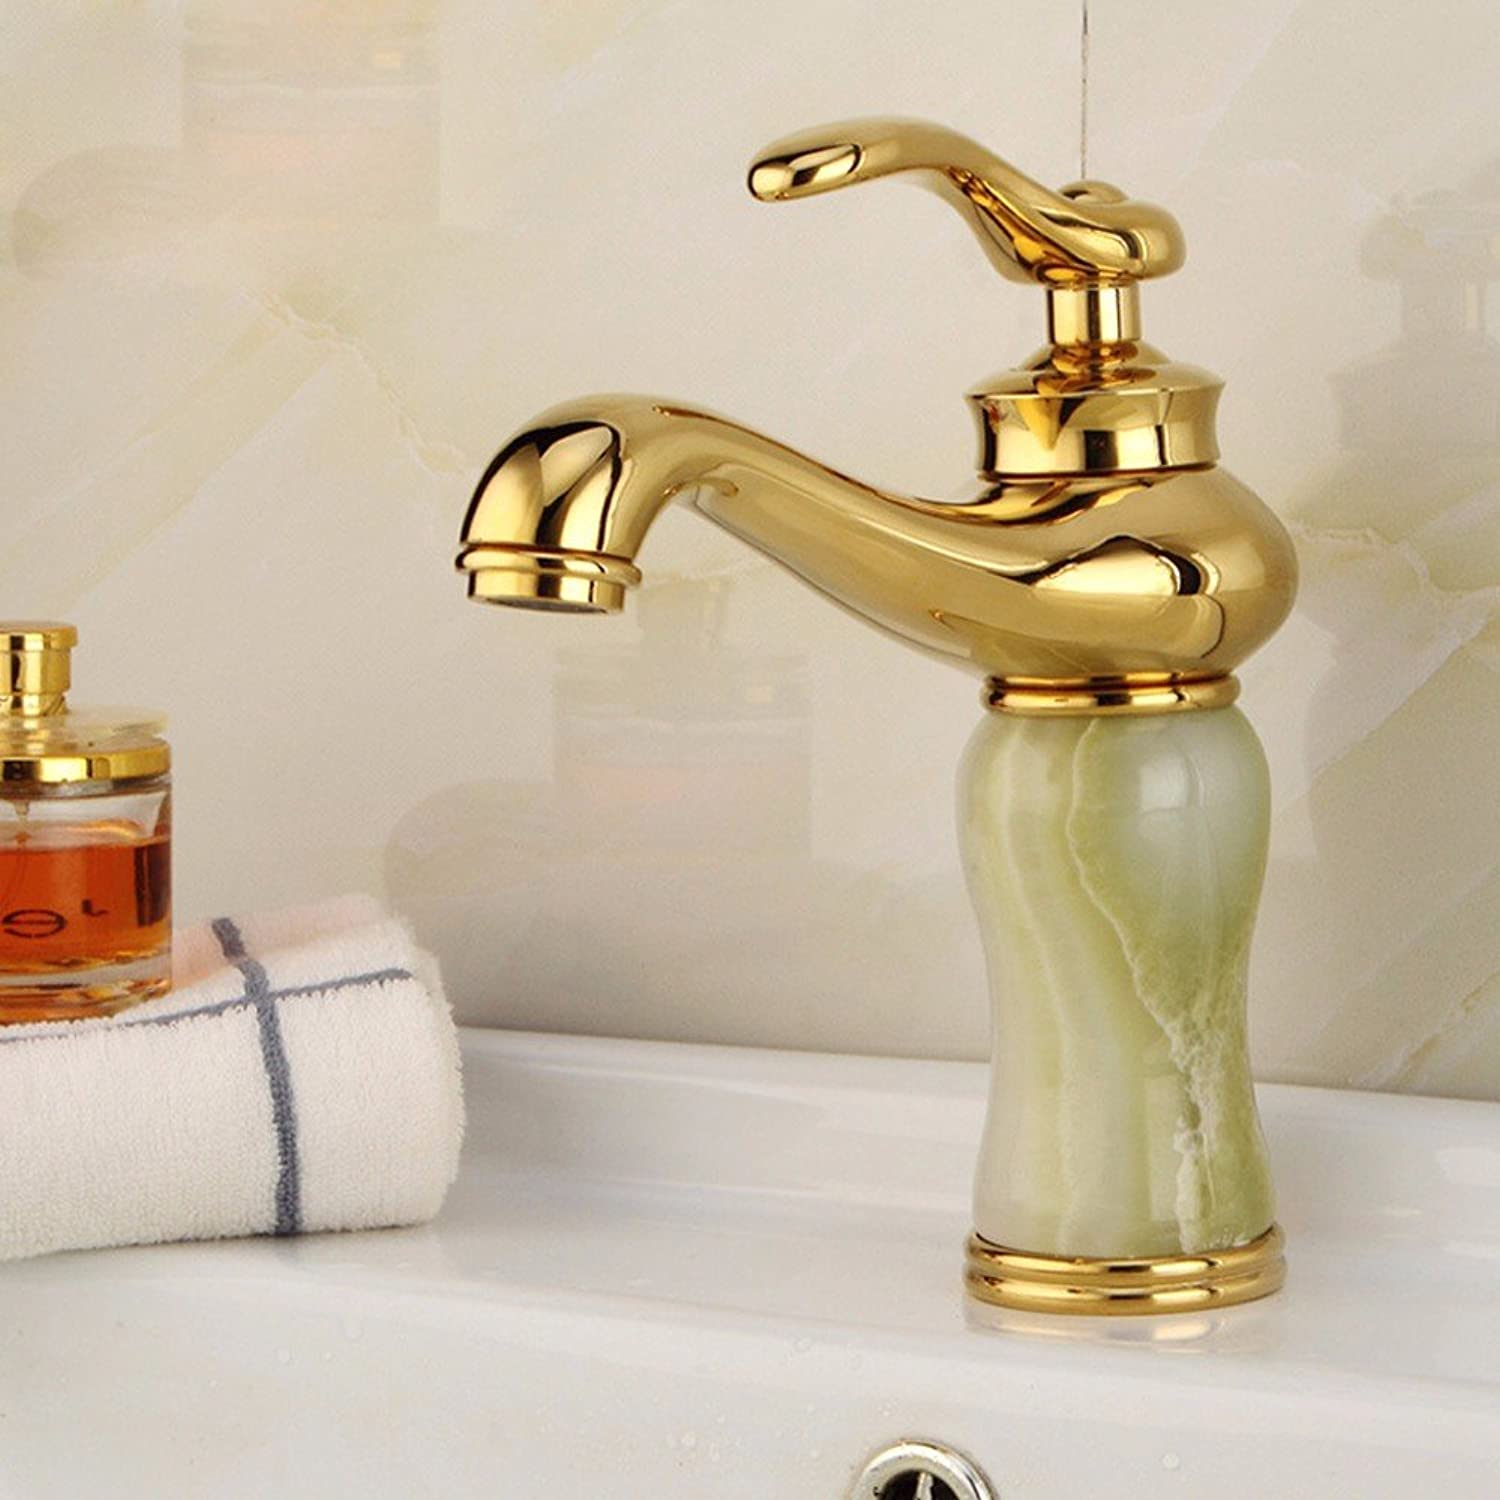 Hlluya Professional Sink Mixer Tap Kitchen Faucet The jewel of the whole copper basin faucet, lift-up gold jade Washbasin Faucet